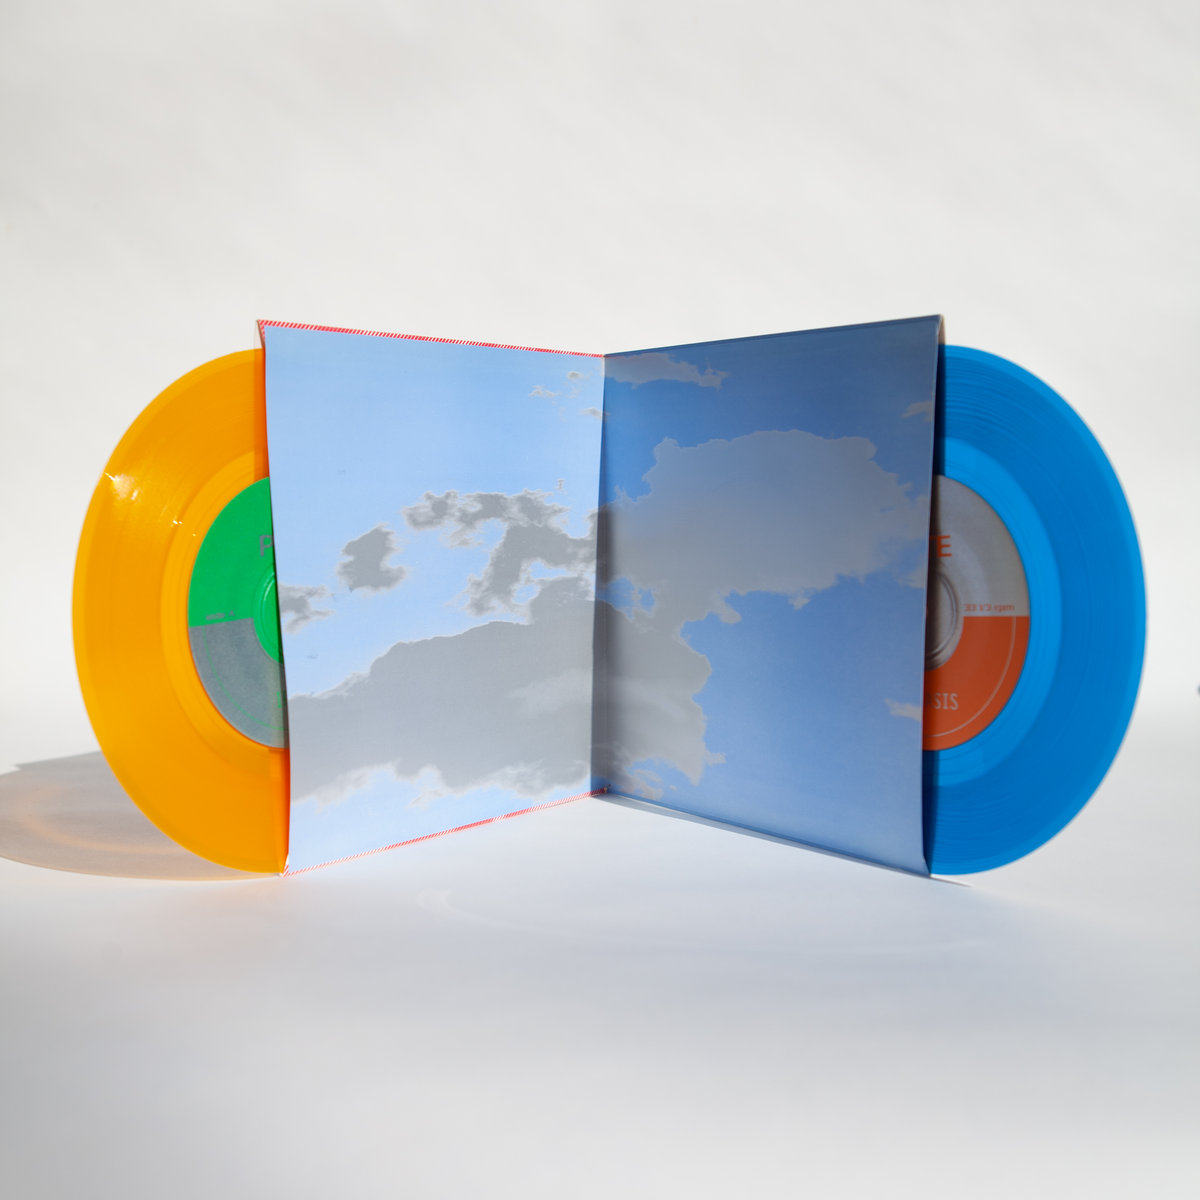 """Pete dual 7"""" on colored vinyl"""